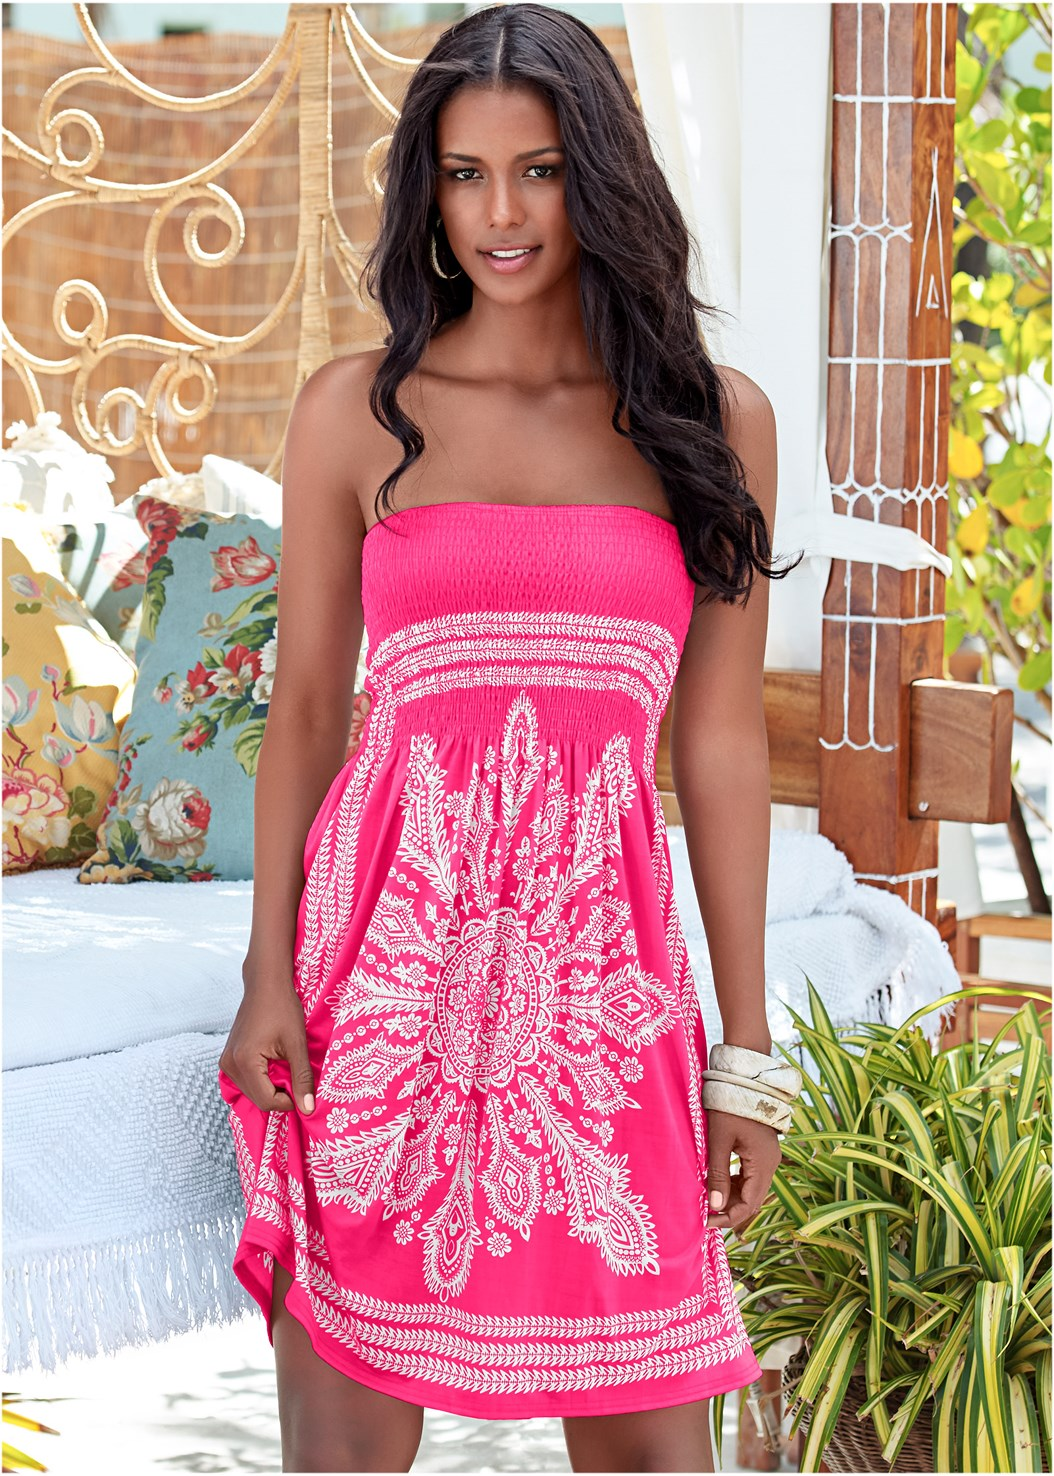 Bandeau Dress,Strappy Low Rise Bottom,Grommet Lace Up One-Piece,Studded Flip Flops